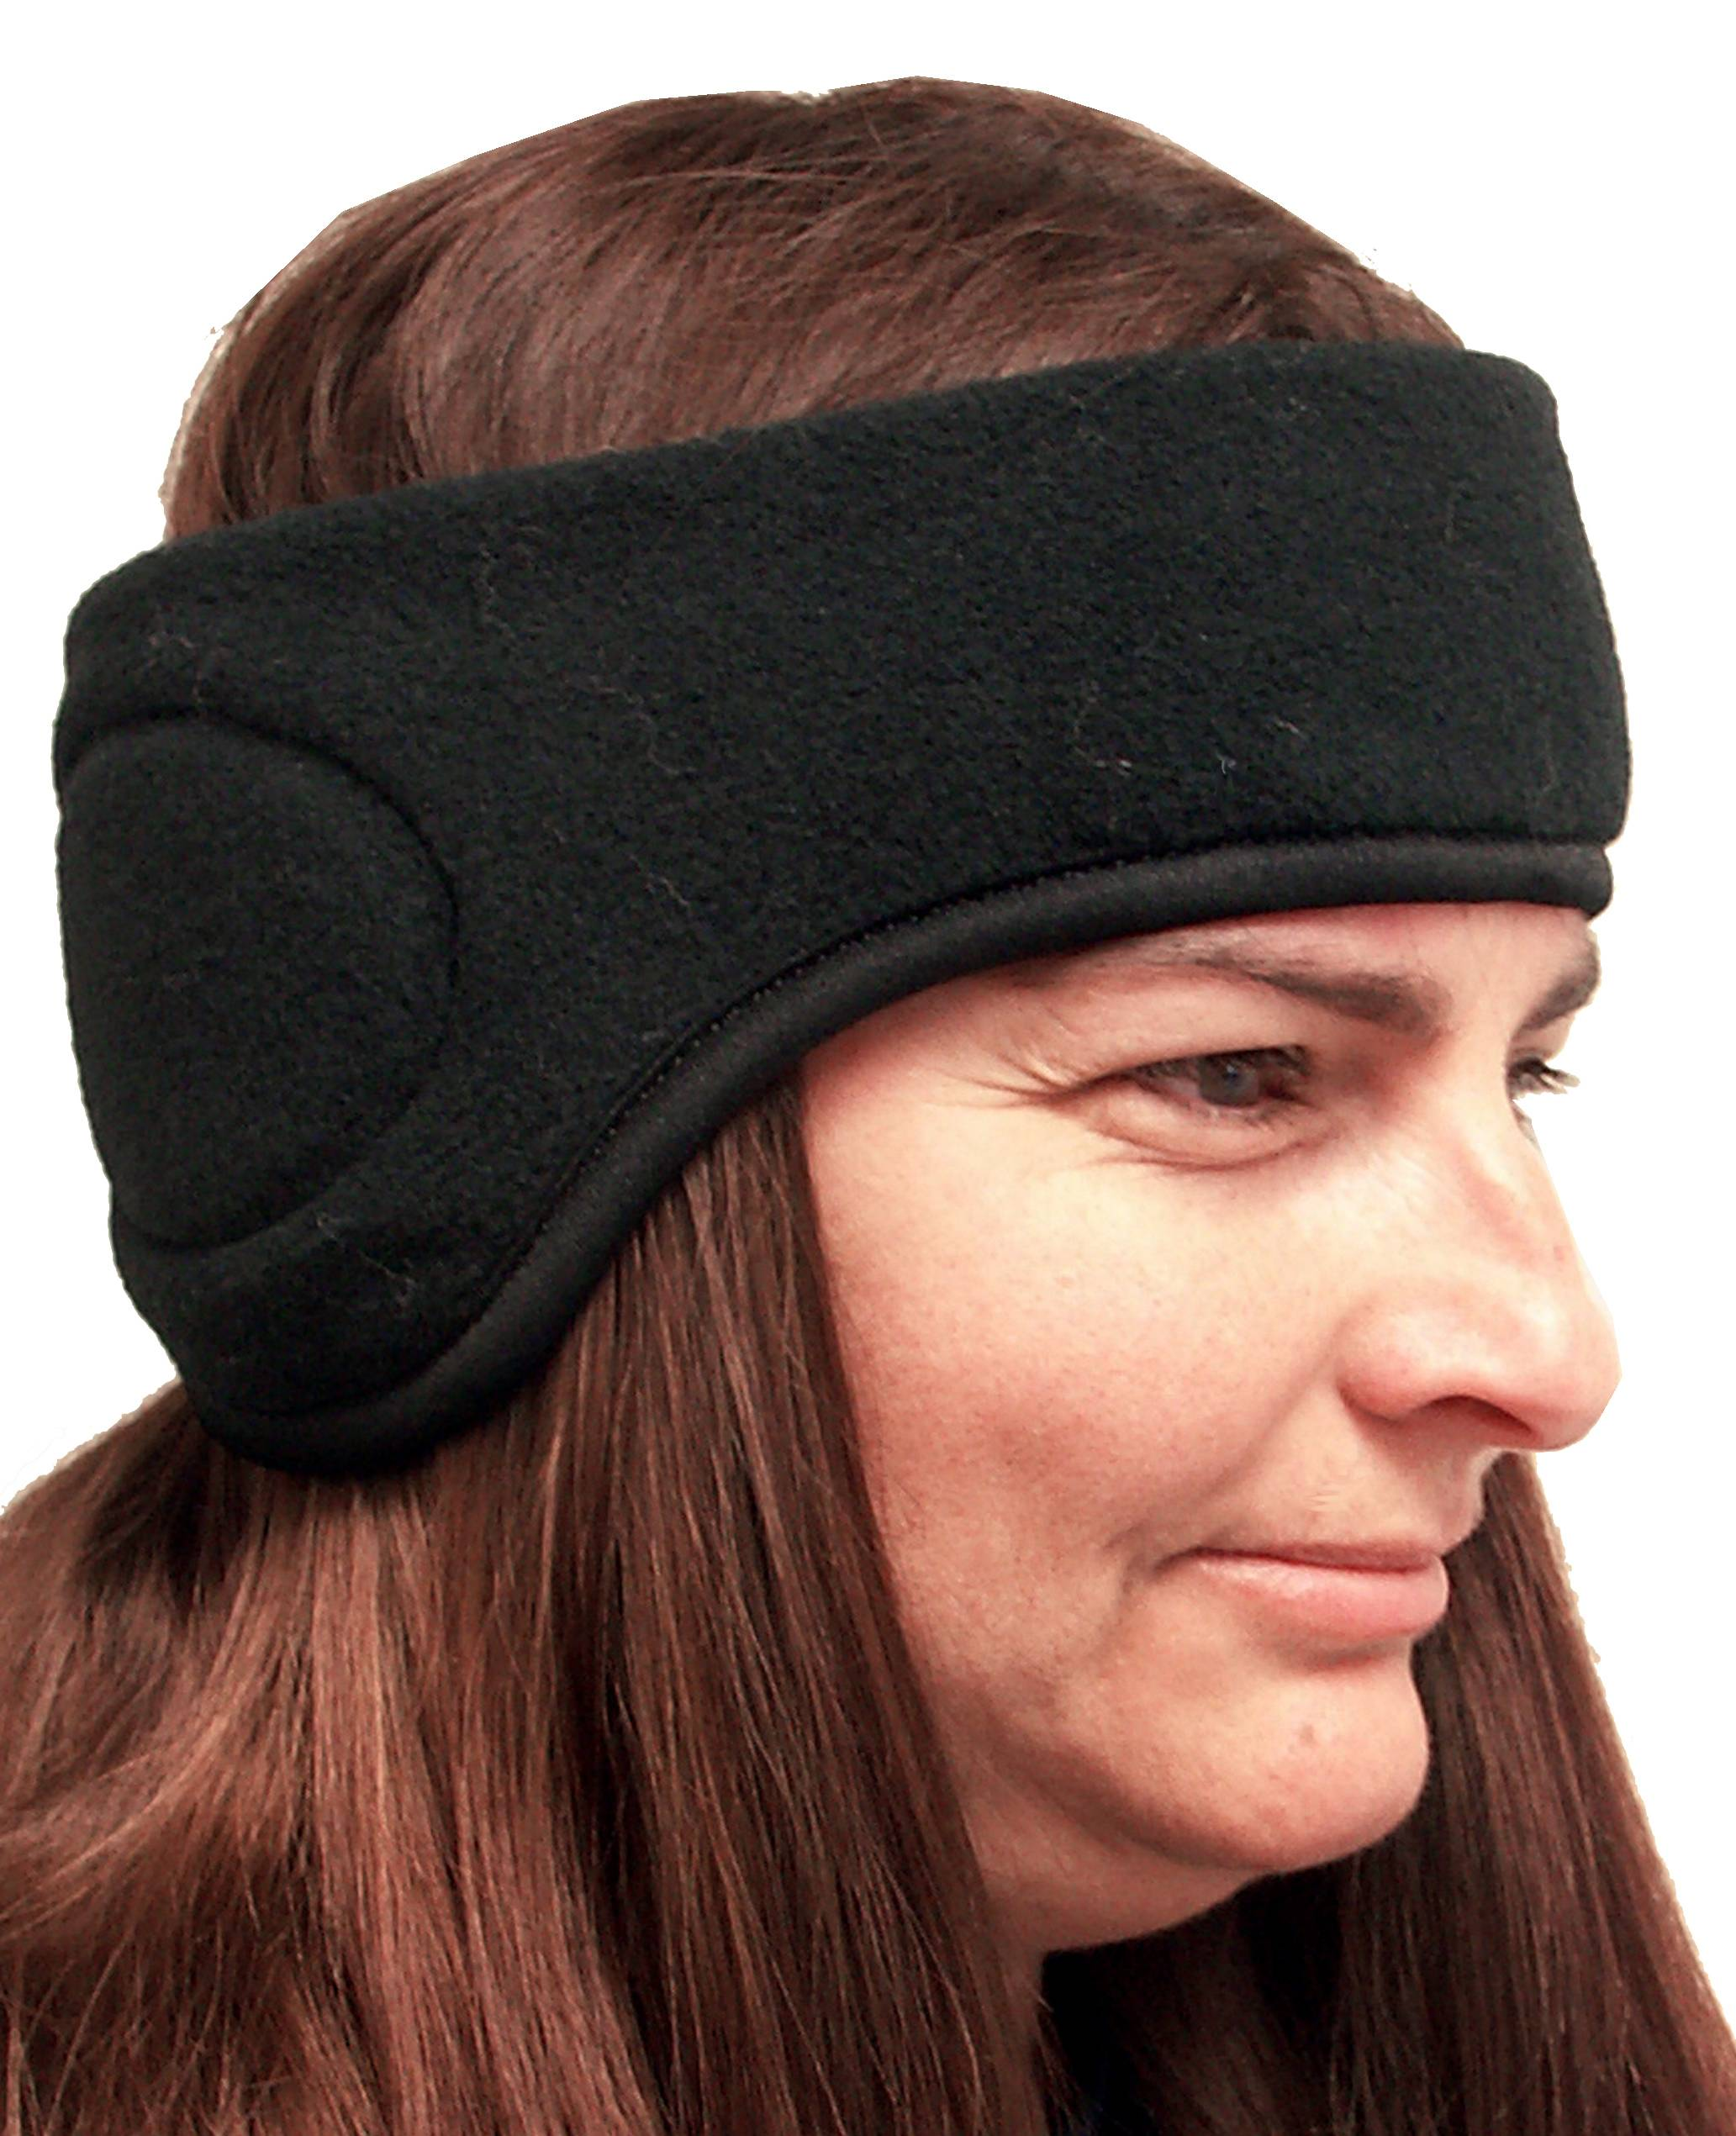 Toasty Headband Earmuff